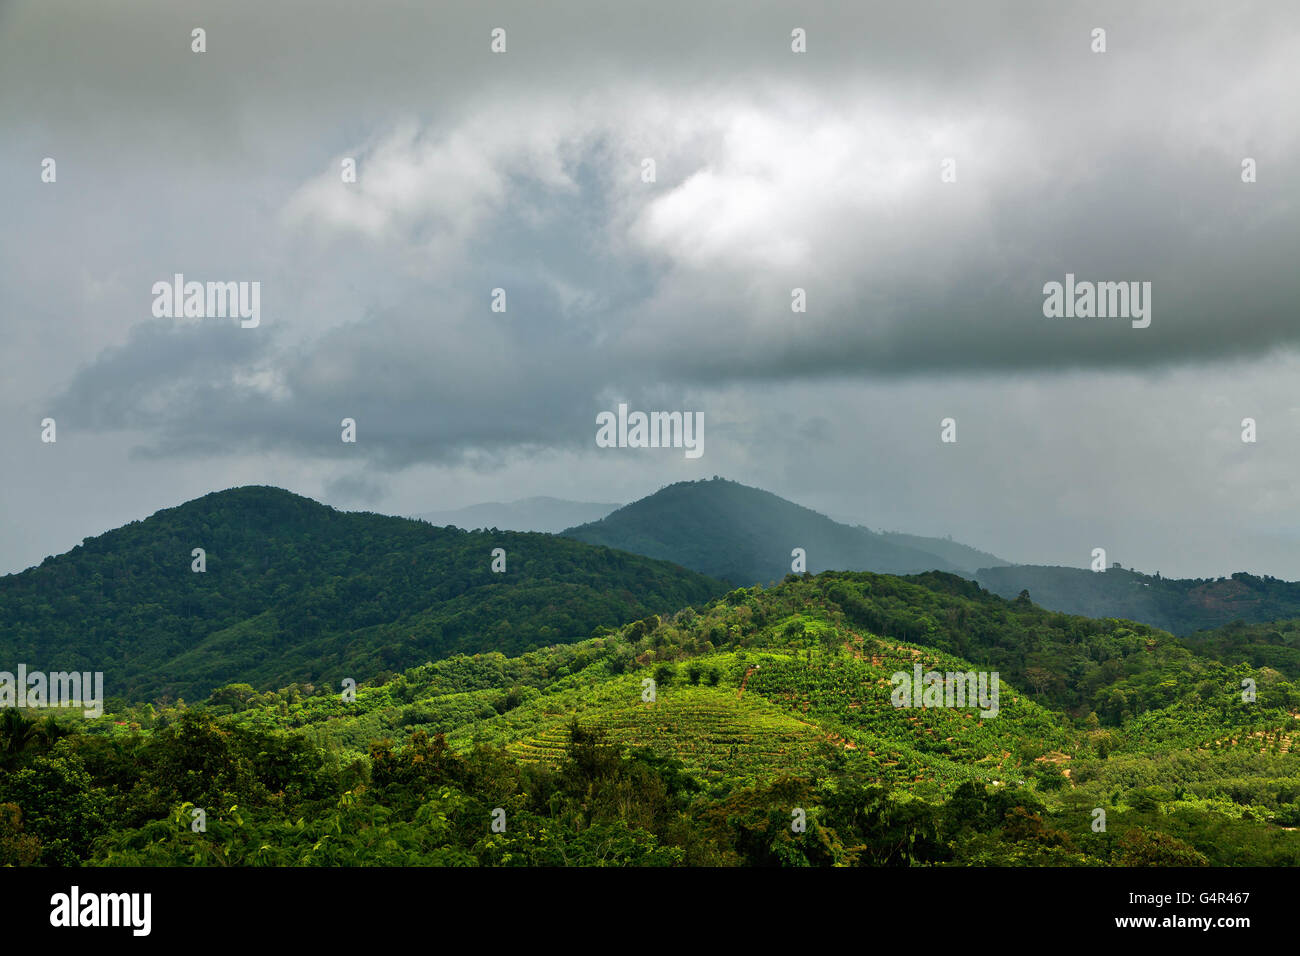 The rainy season on the island of Phuket in Thailand. - Stock Image